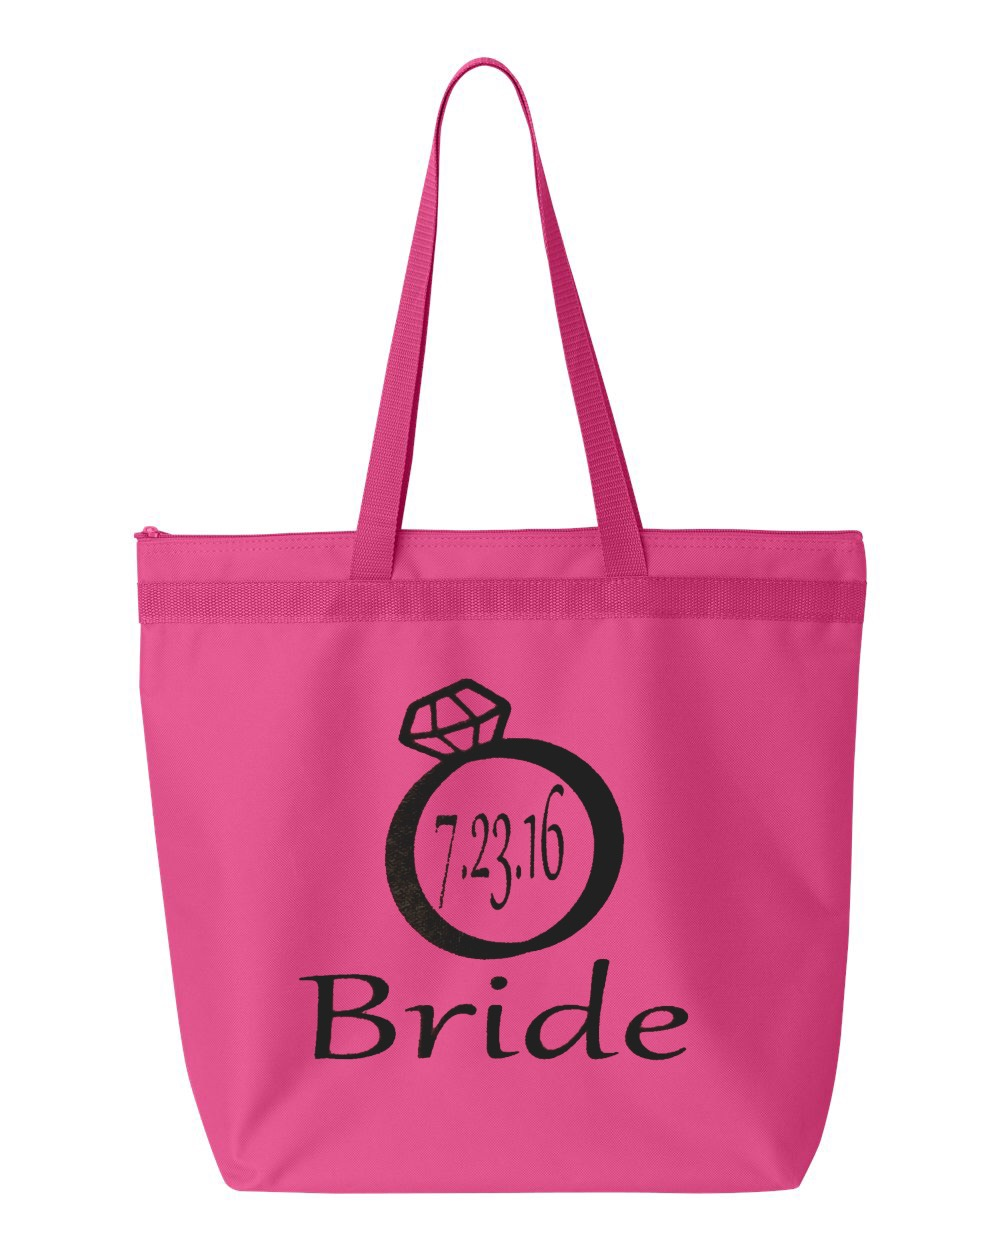 Bridal Party with Wedding Date Zipper Tote Bag